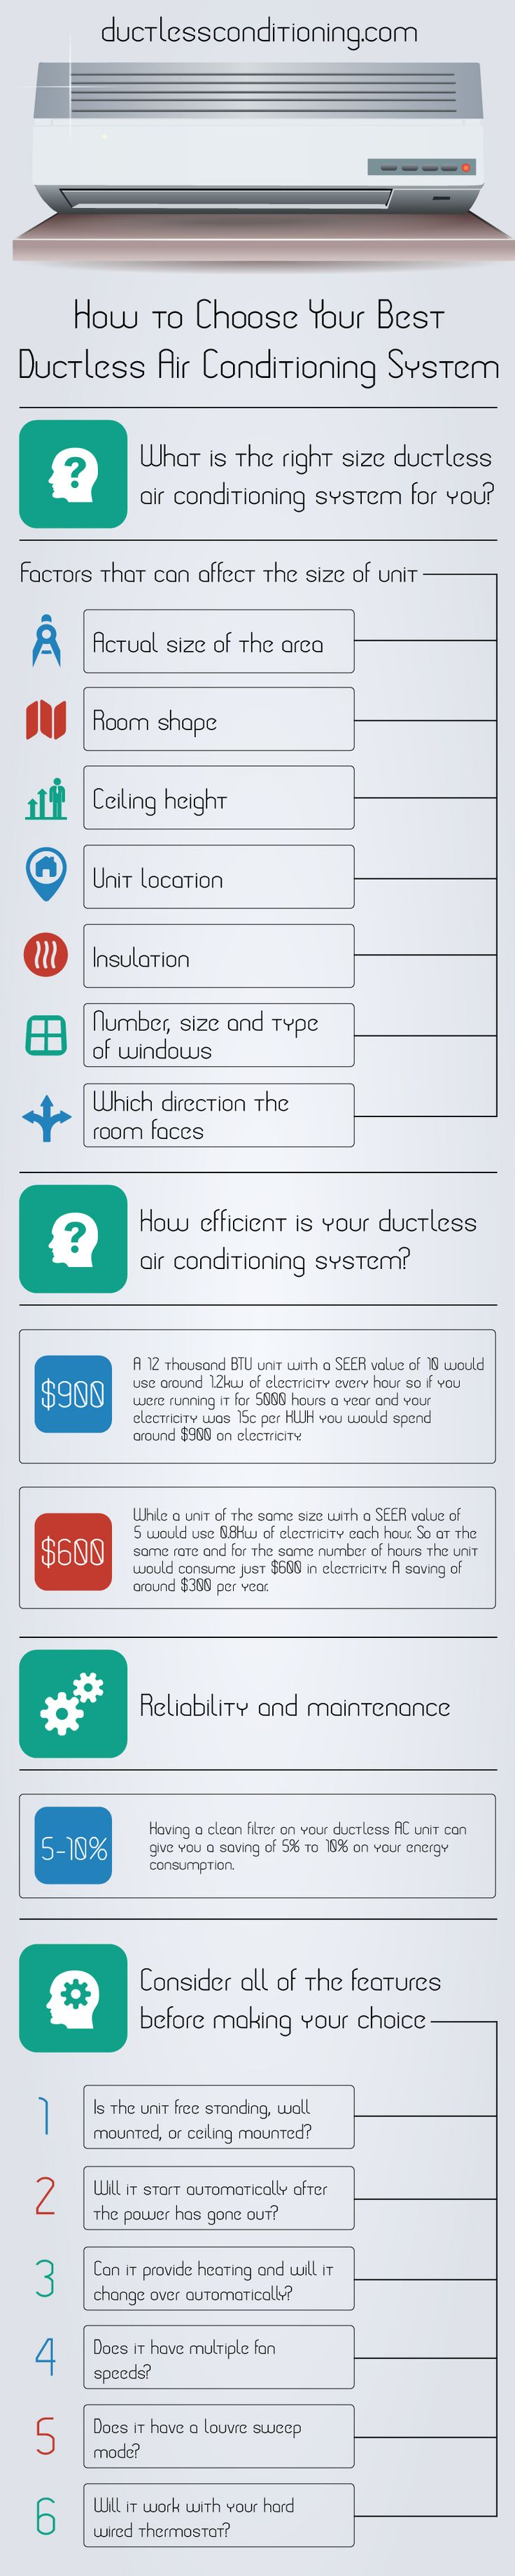 Check our full guide on ductless air conditioning and choose your best split ductless HVAC system http://www.ductlessconditioning.com/